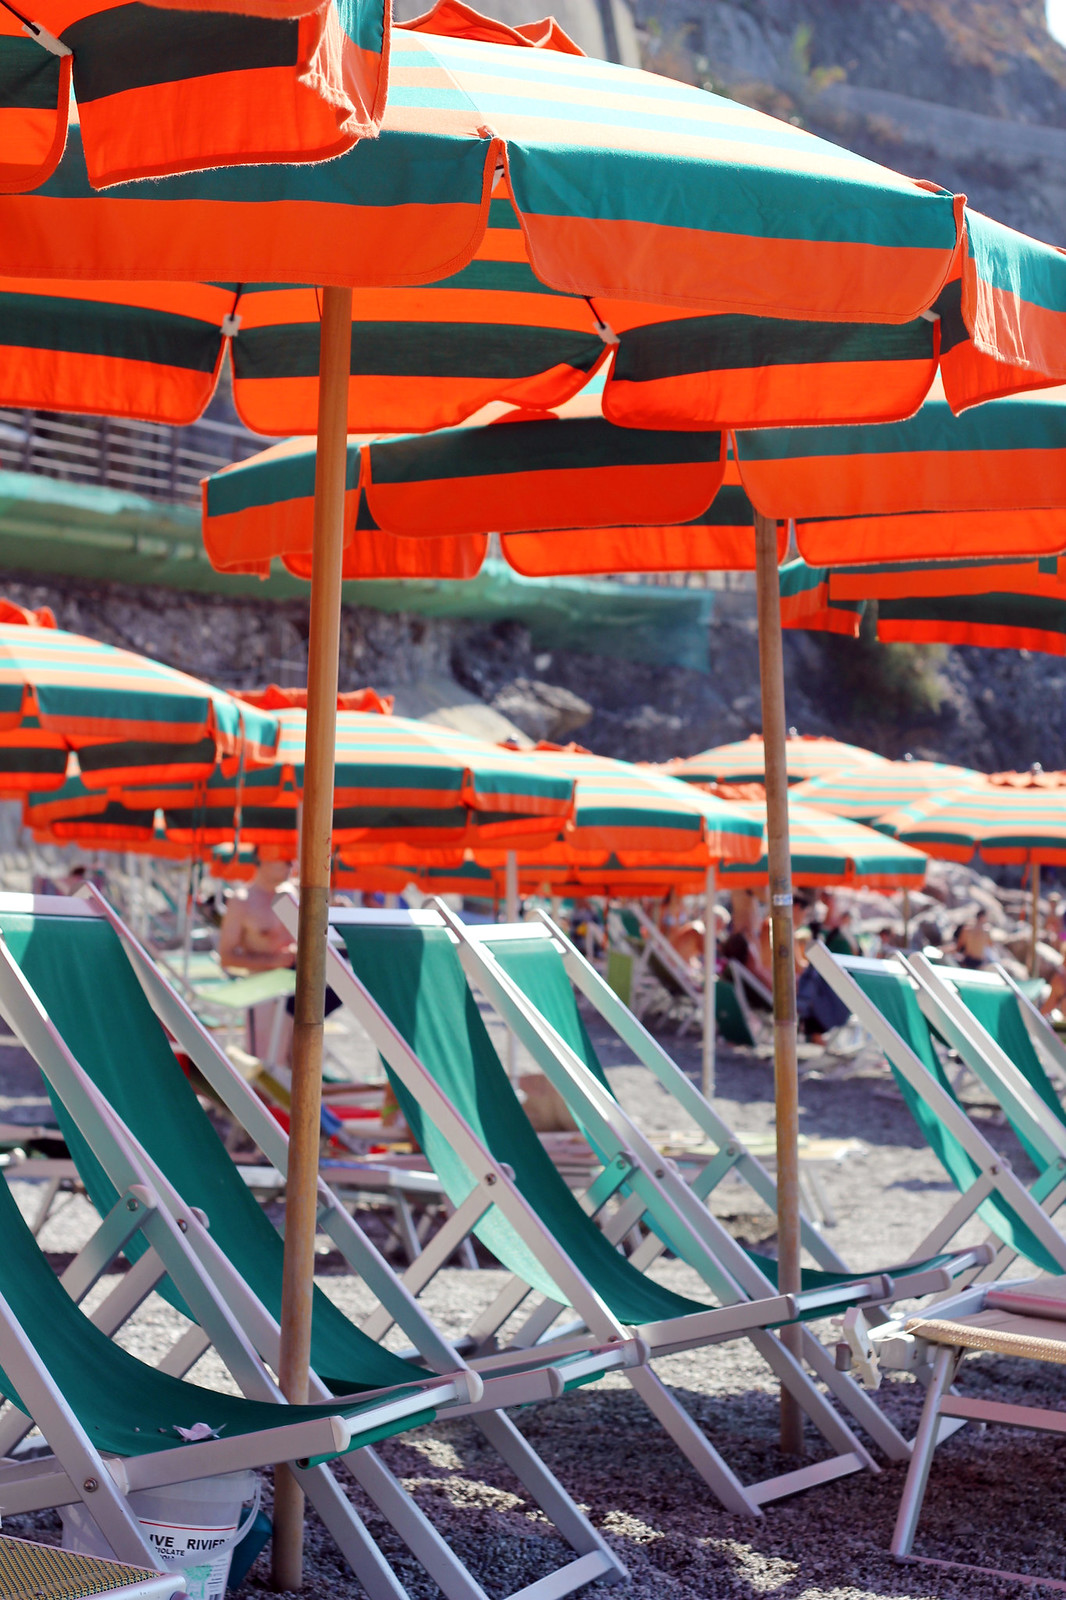 Monterosso Cinque Terre orange and green umbrellas and lounge chairs